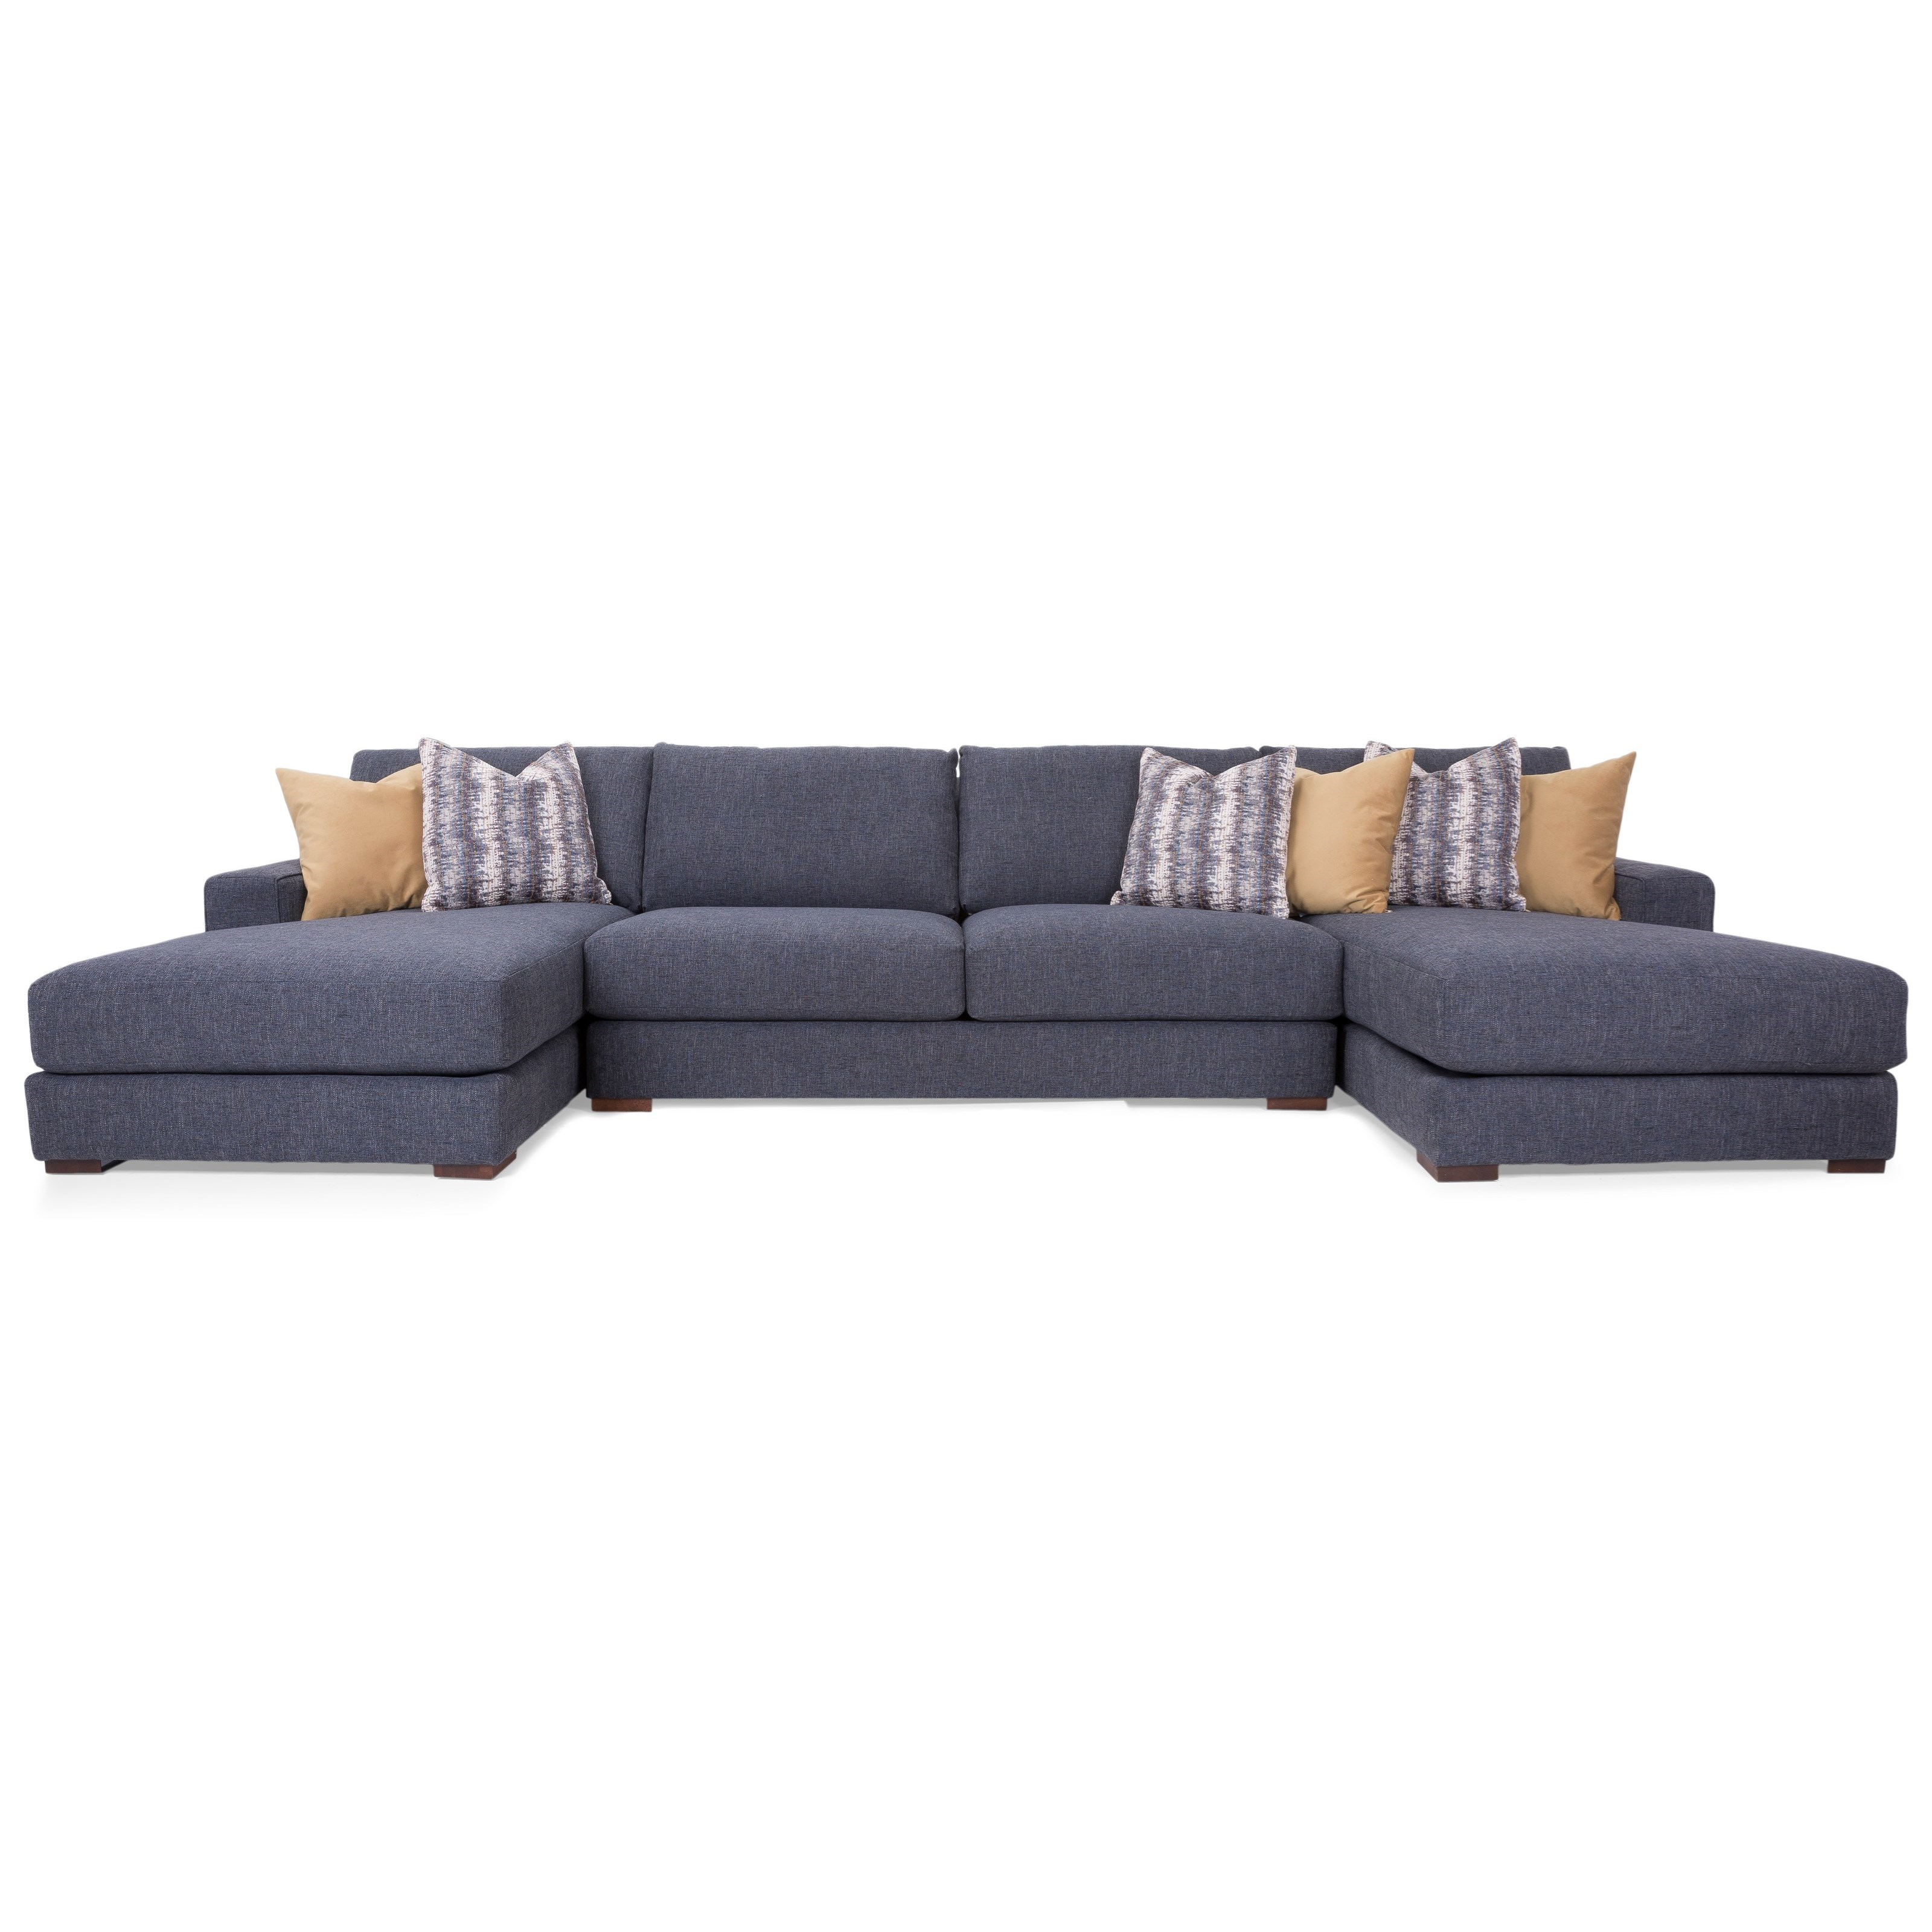 2702 4-Seat Sectional Sofa with 2 Chaise Lounges by Decor-Rest at Rooms for Less